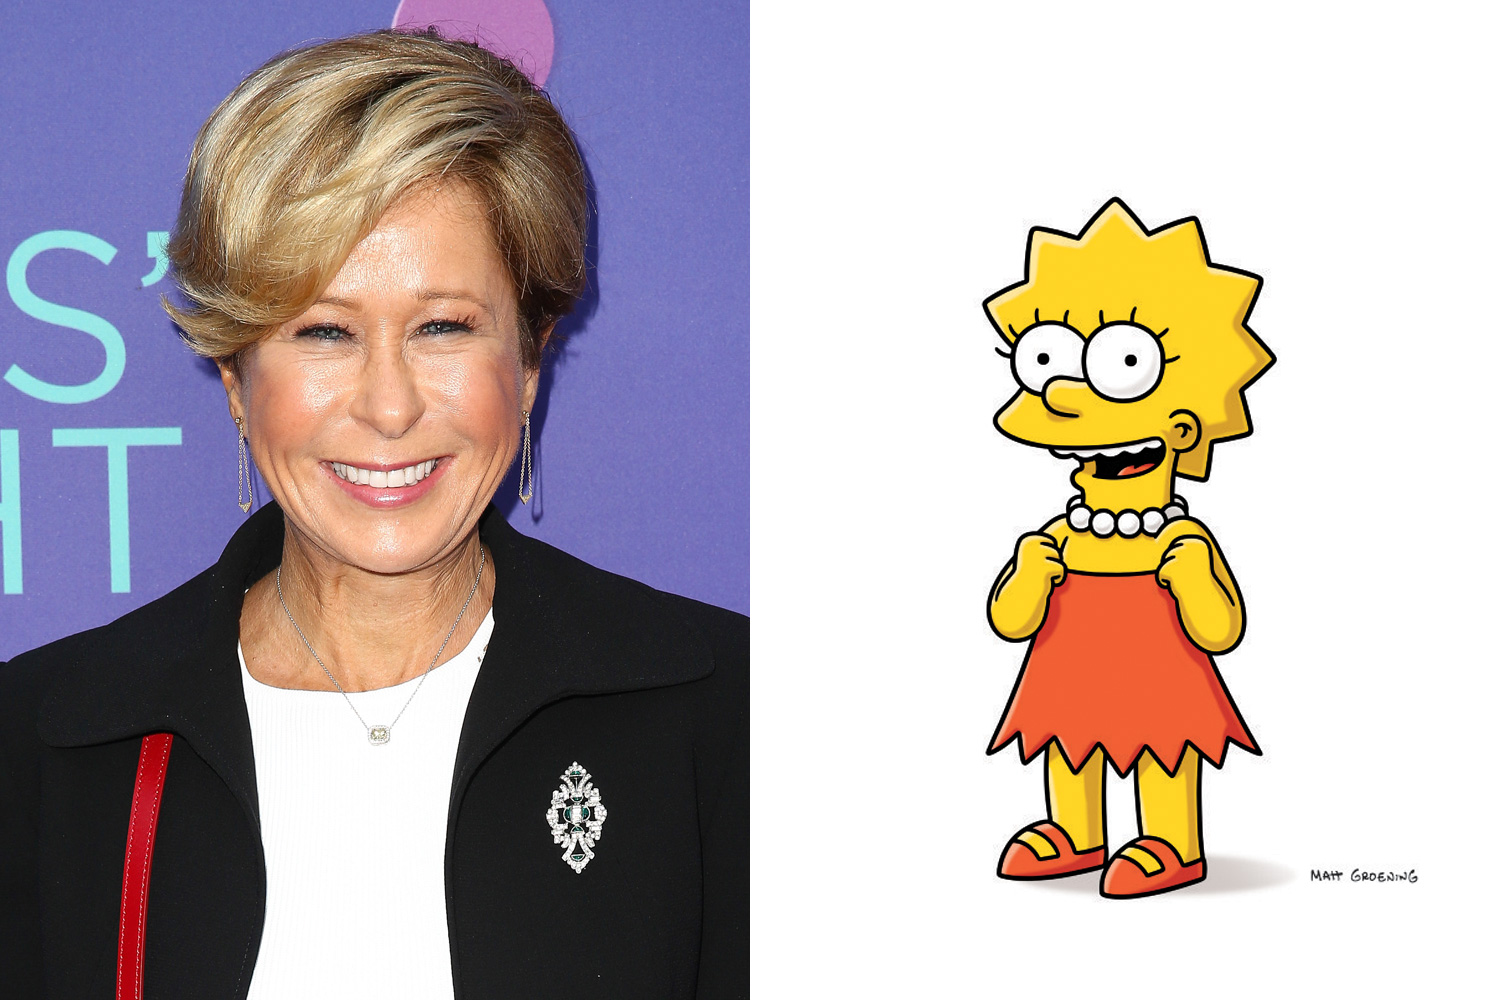 Yeardley Smith is the voice of Lisa, the brains of the Simpson clan.